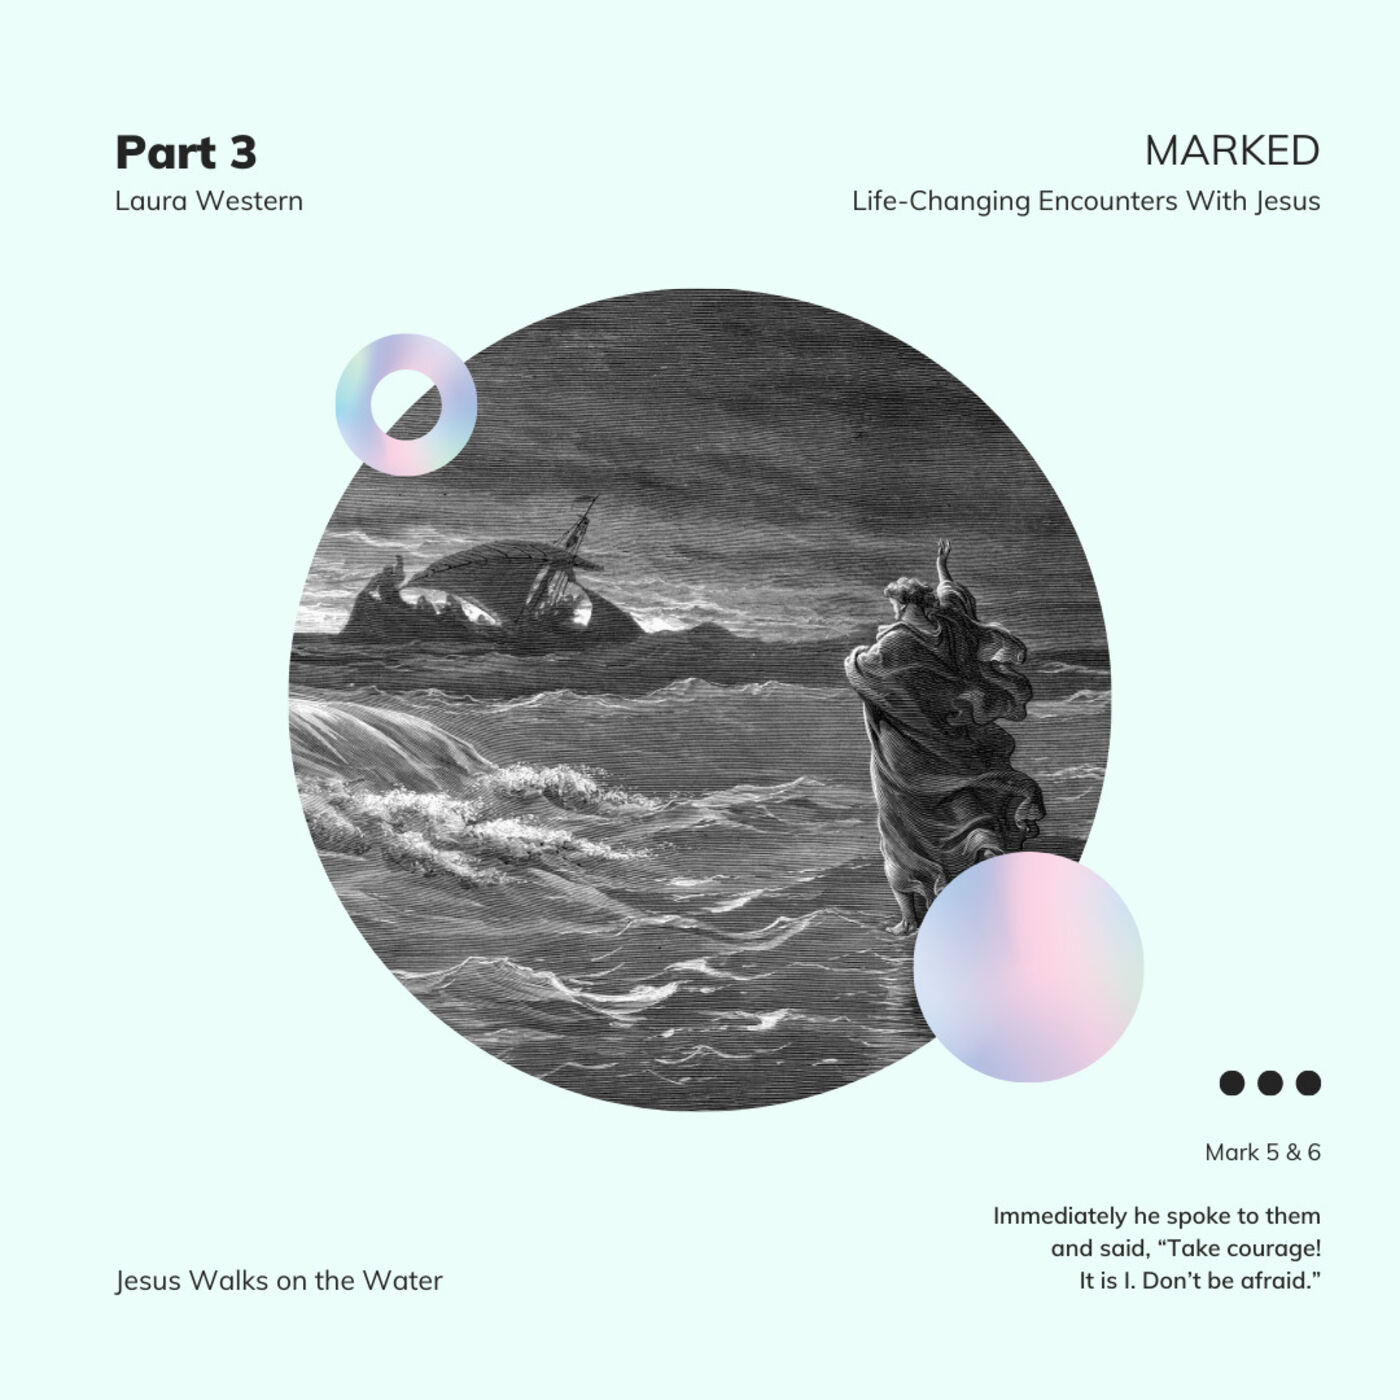 MARKED. Life-Changing Encounters With Jesus - Mark 6:45-56 - Laura Western